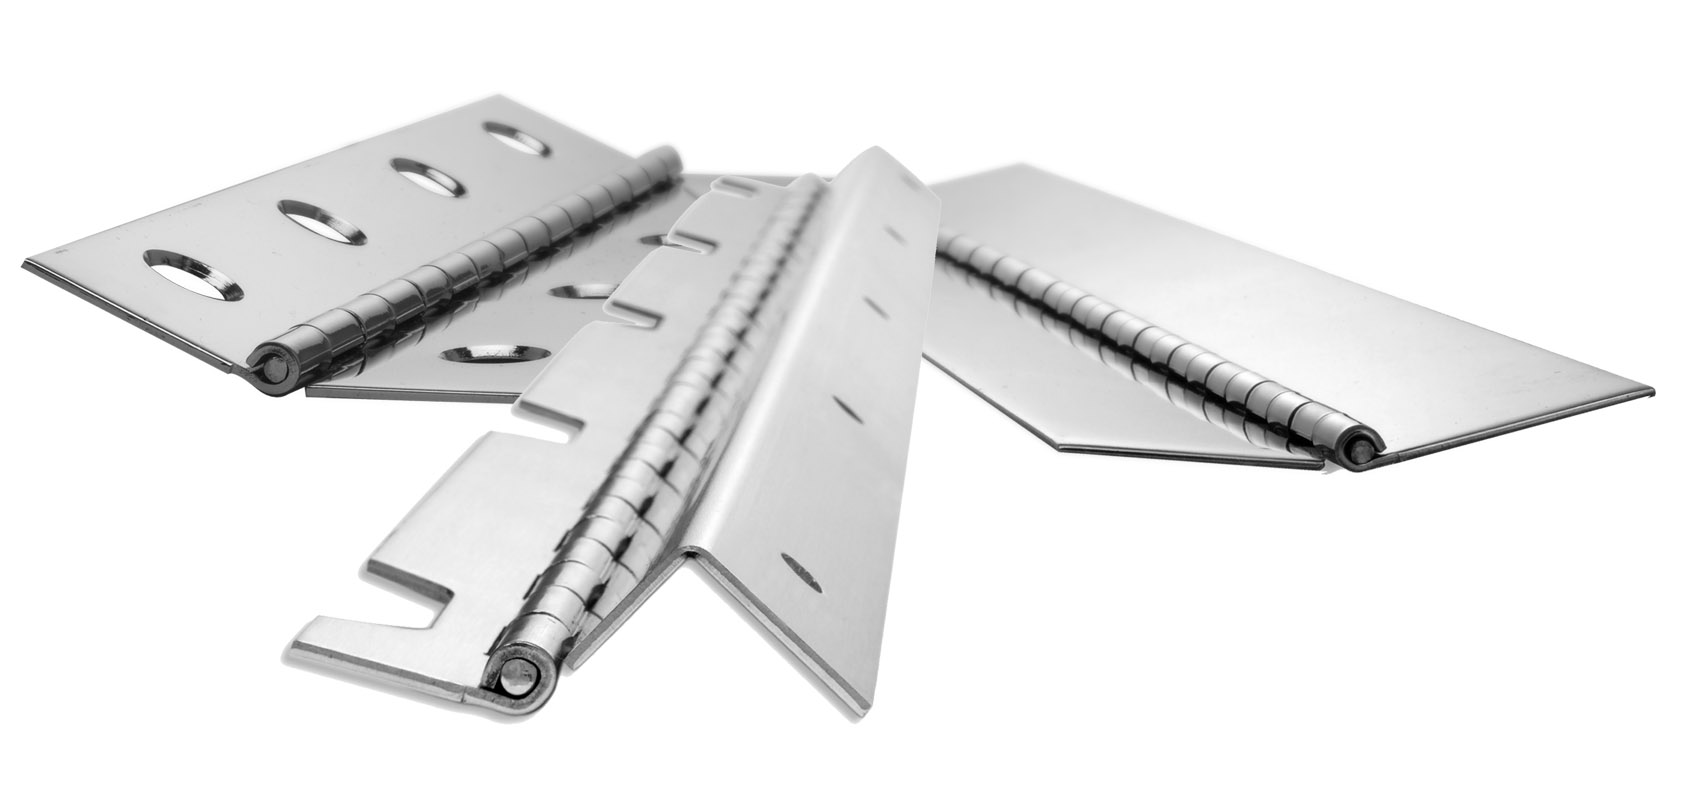 Design Make-To-Order continuous piano hinge parts using low-cost and time-saving standard continuous hinge specification